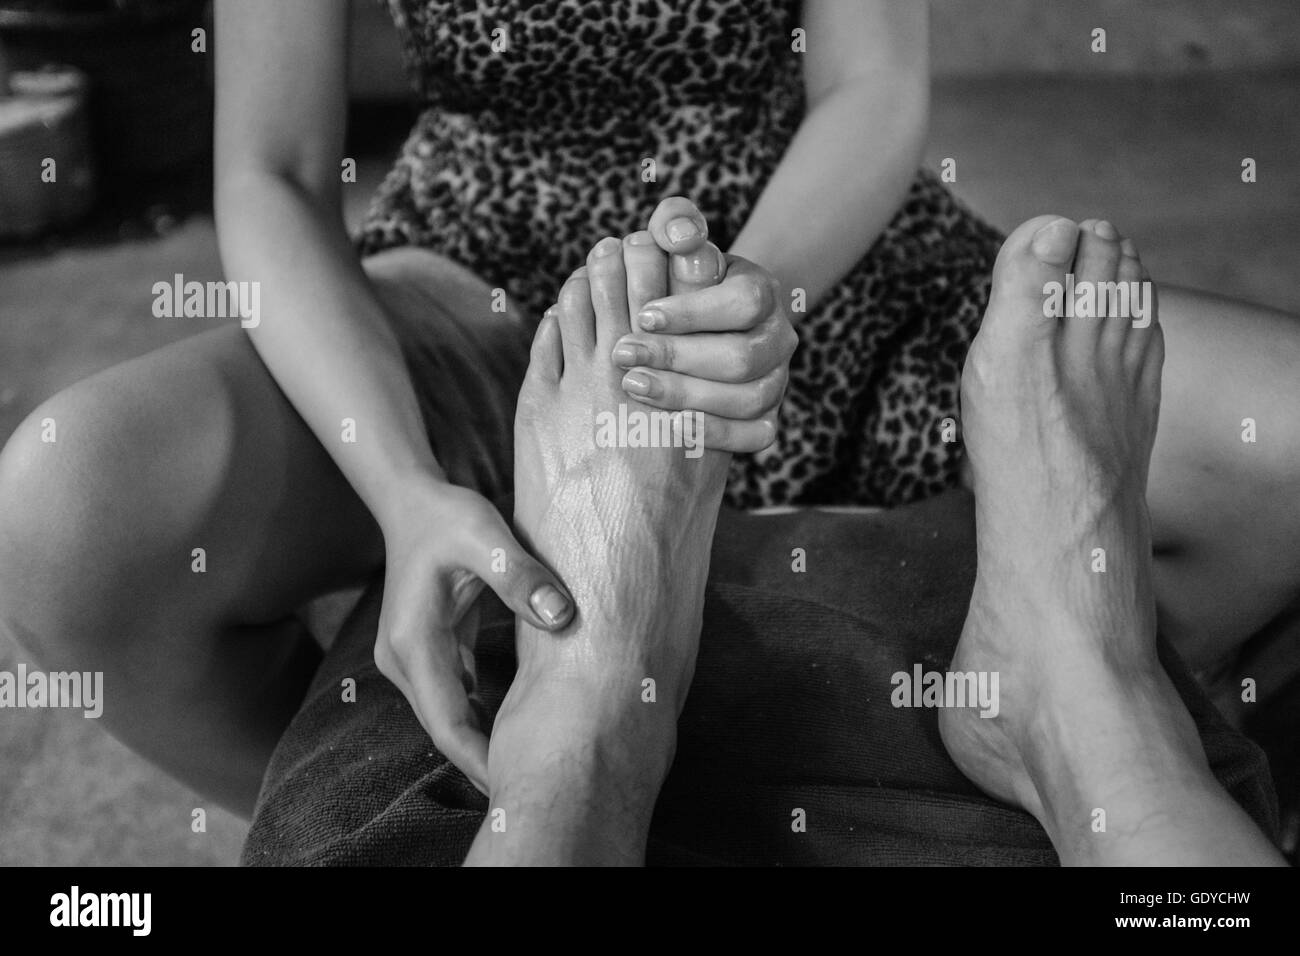 Foot spa, close up detail of feet being massaged,Chiang Mai,Thailand - Stock Image